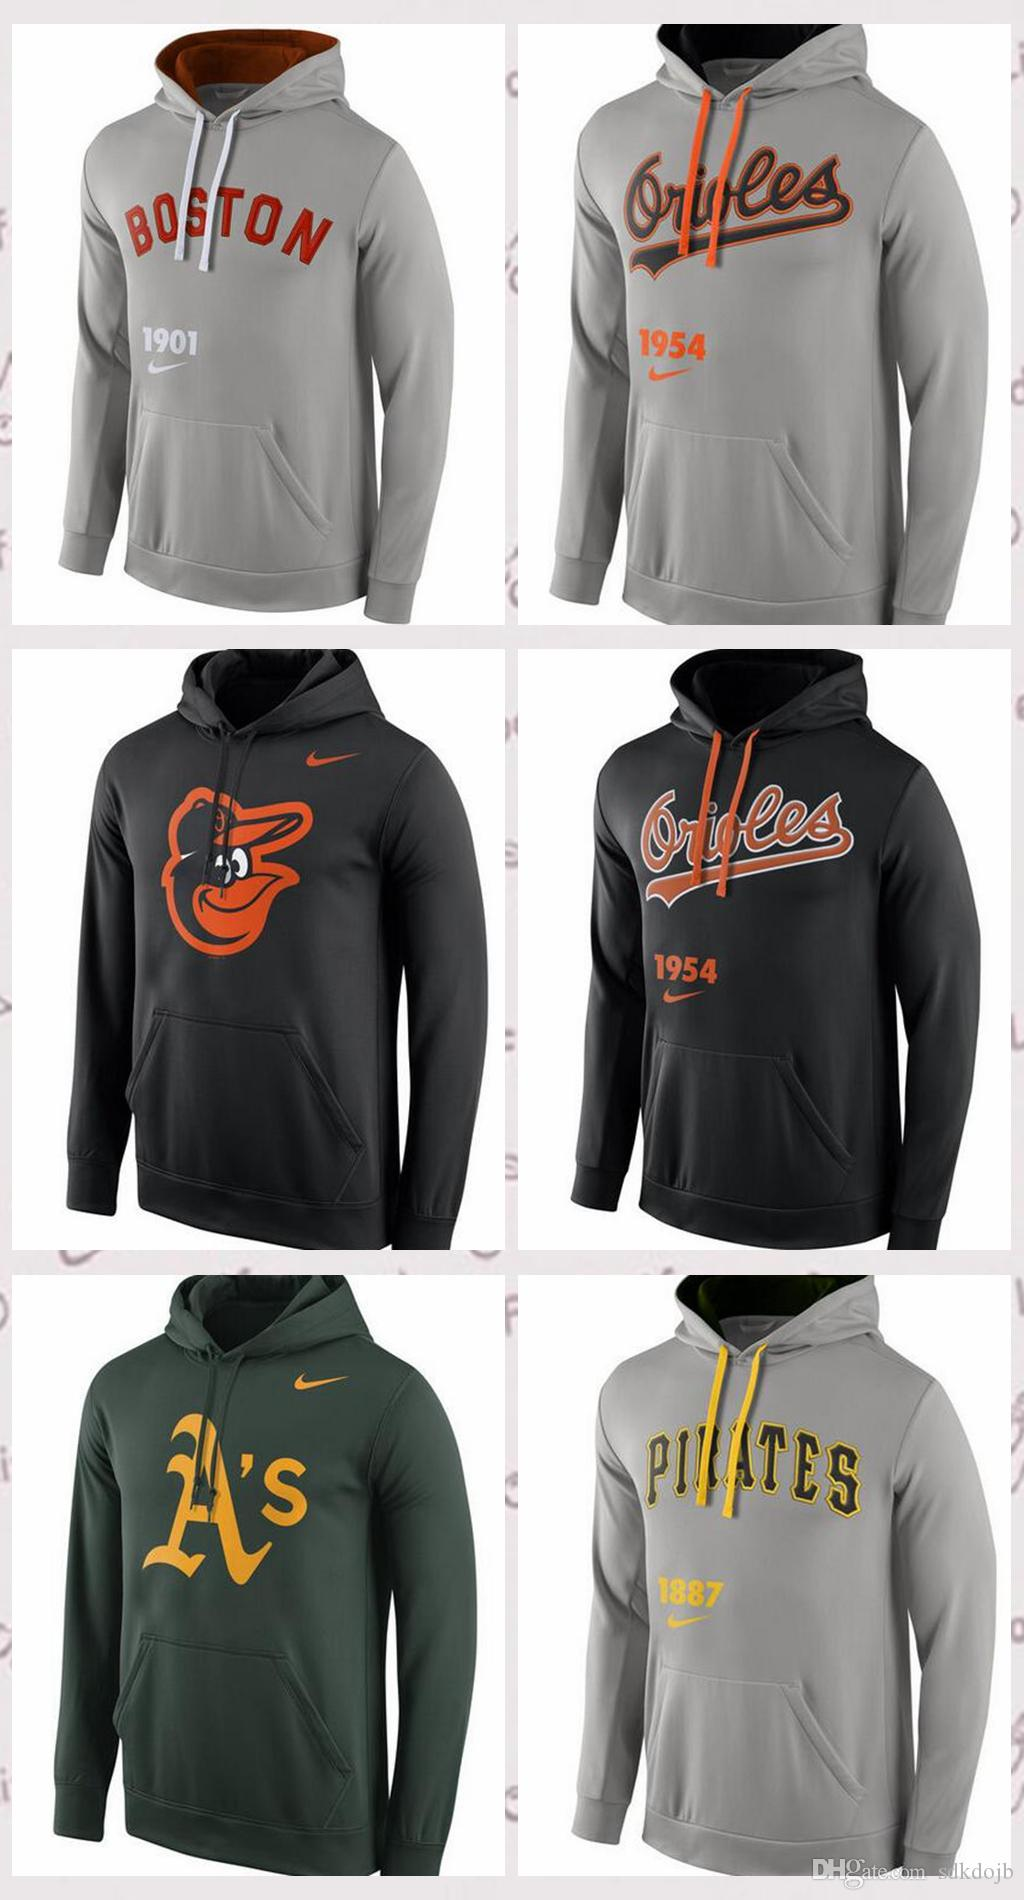 new styles 90c14 5abf8 Men's Oakland Athletics Boston Red Sox Pittsburgh Pirates Baltimore Orioles  Cooperstown Performance Pullover Hoodie